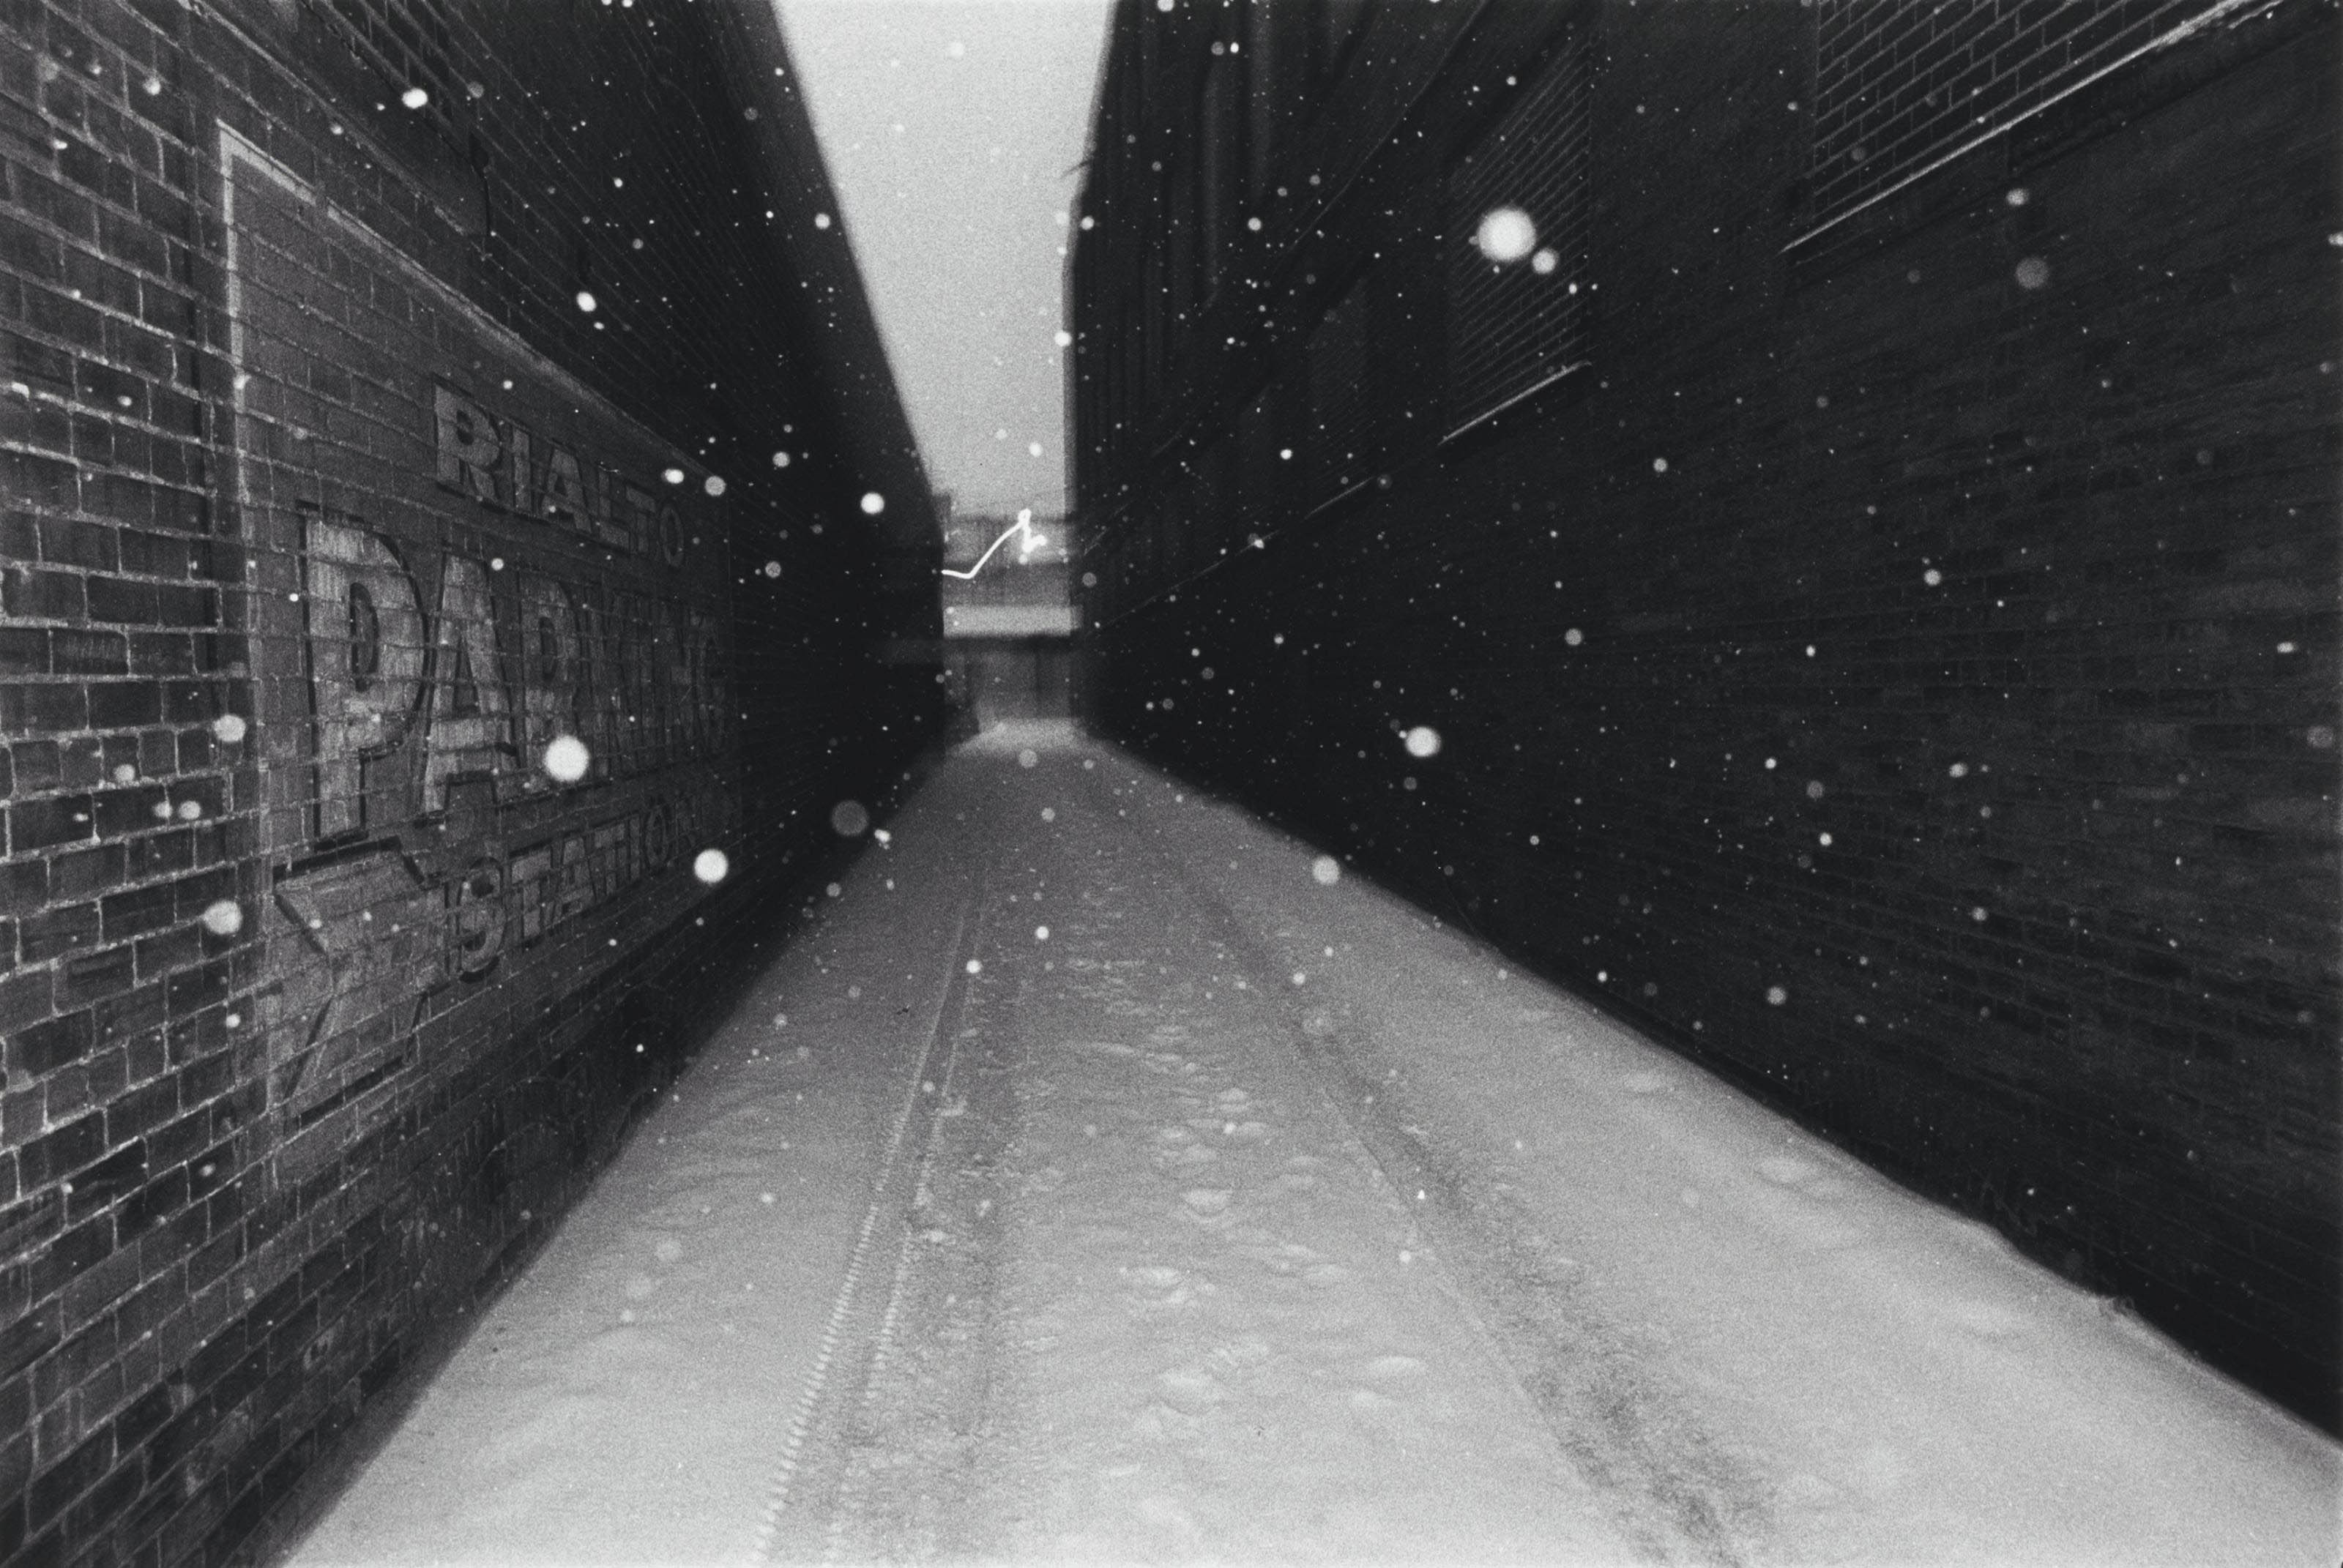 Snow in Alley, 1975-1976